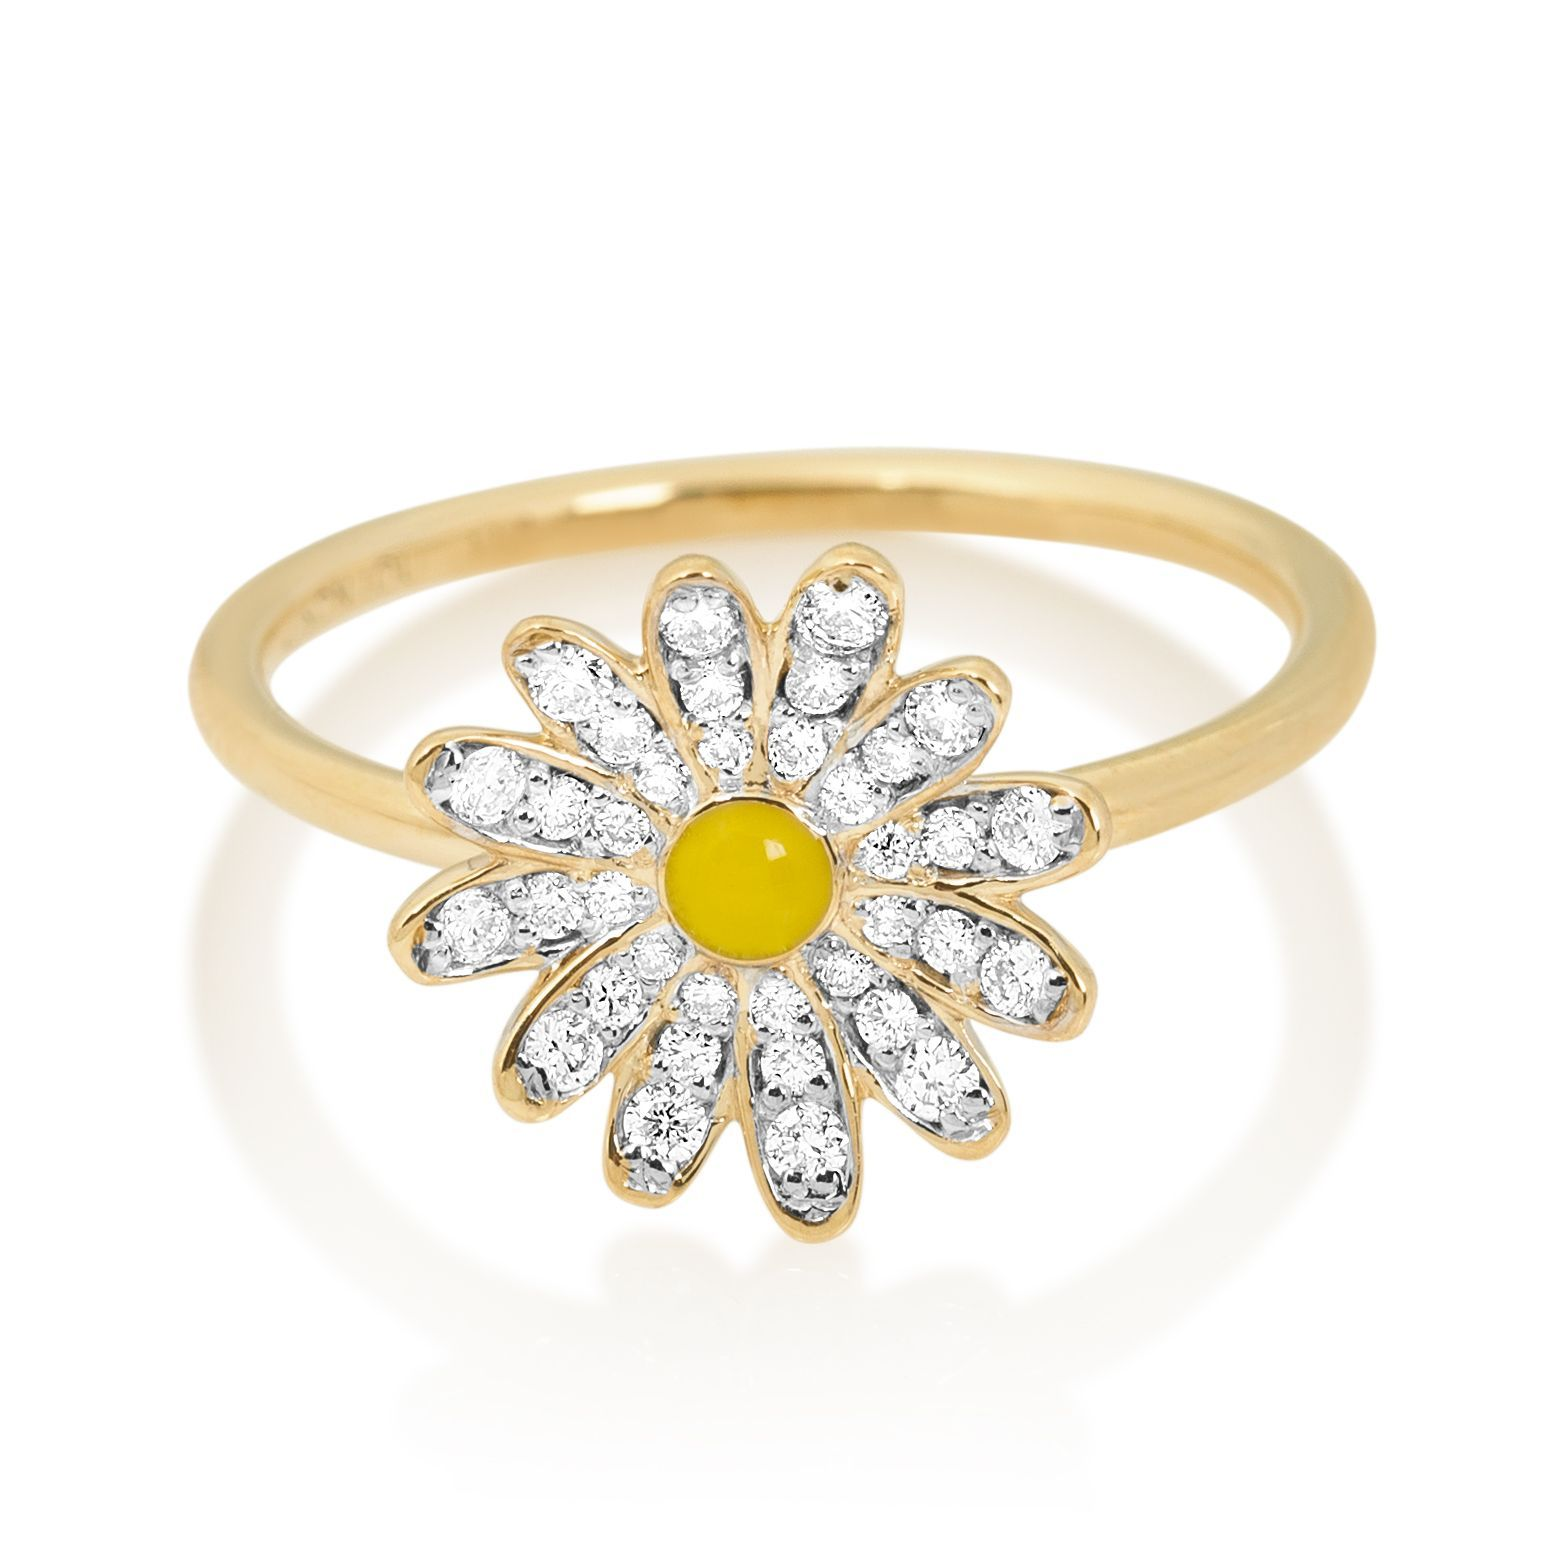 of engagement daisy rings ring brides bazaar news original uk best annoushka the